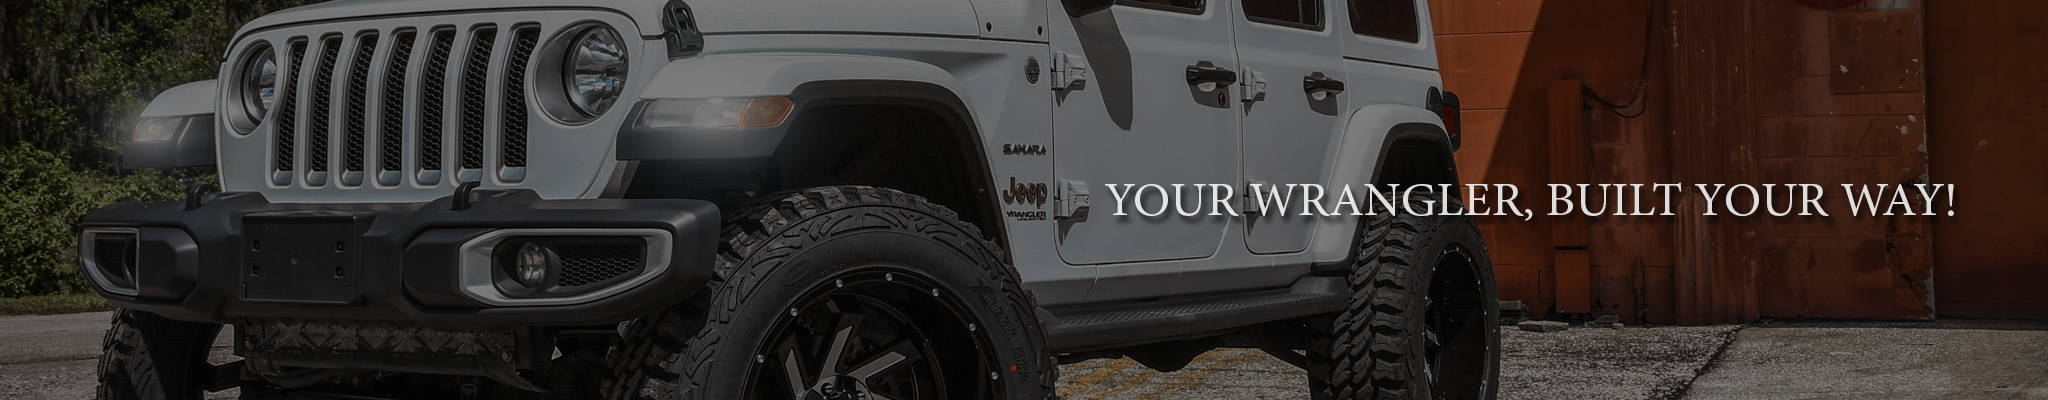 3C Truck Conversions Your JEEP JL Wrangler Truck Built Your Way! Customize your Build Here.